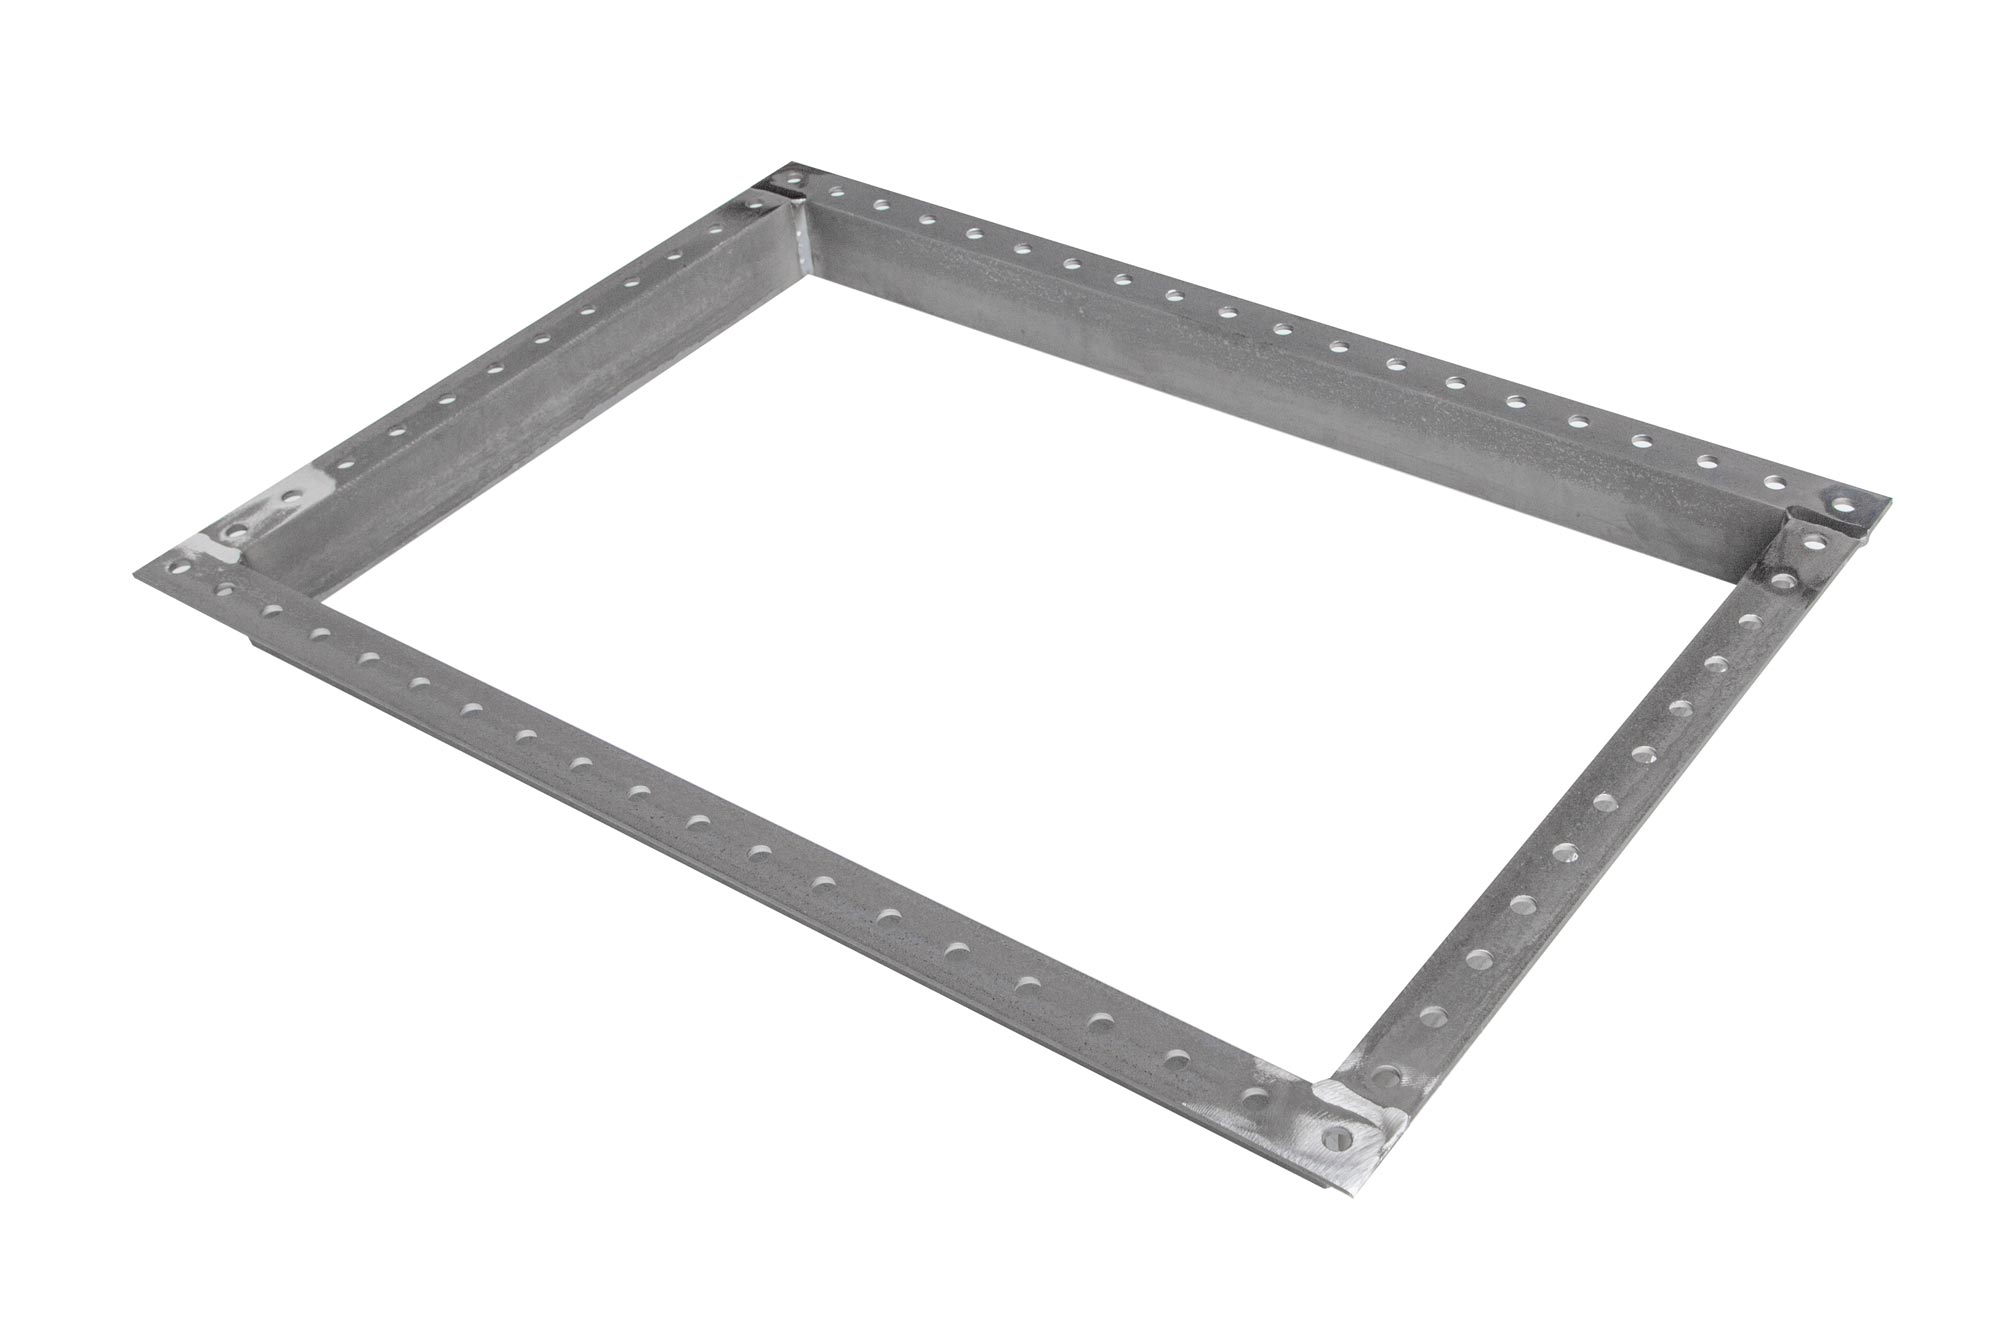 Rectangular Manway Cleanout Frame for Storage Tanks - Buy Online